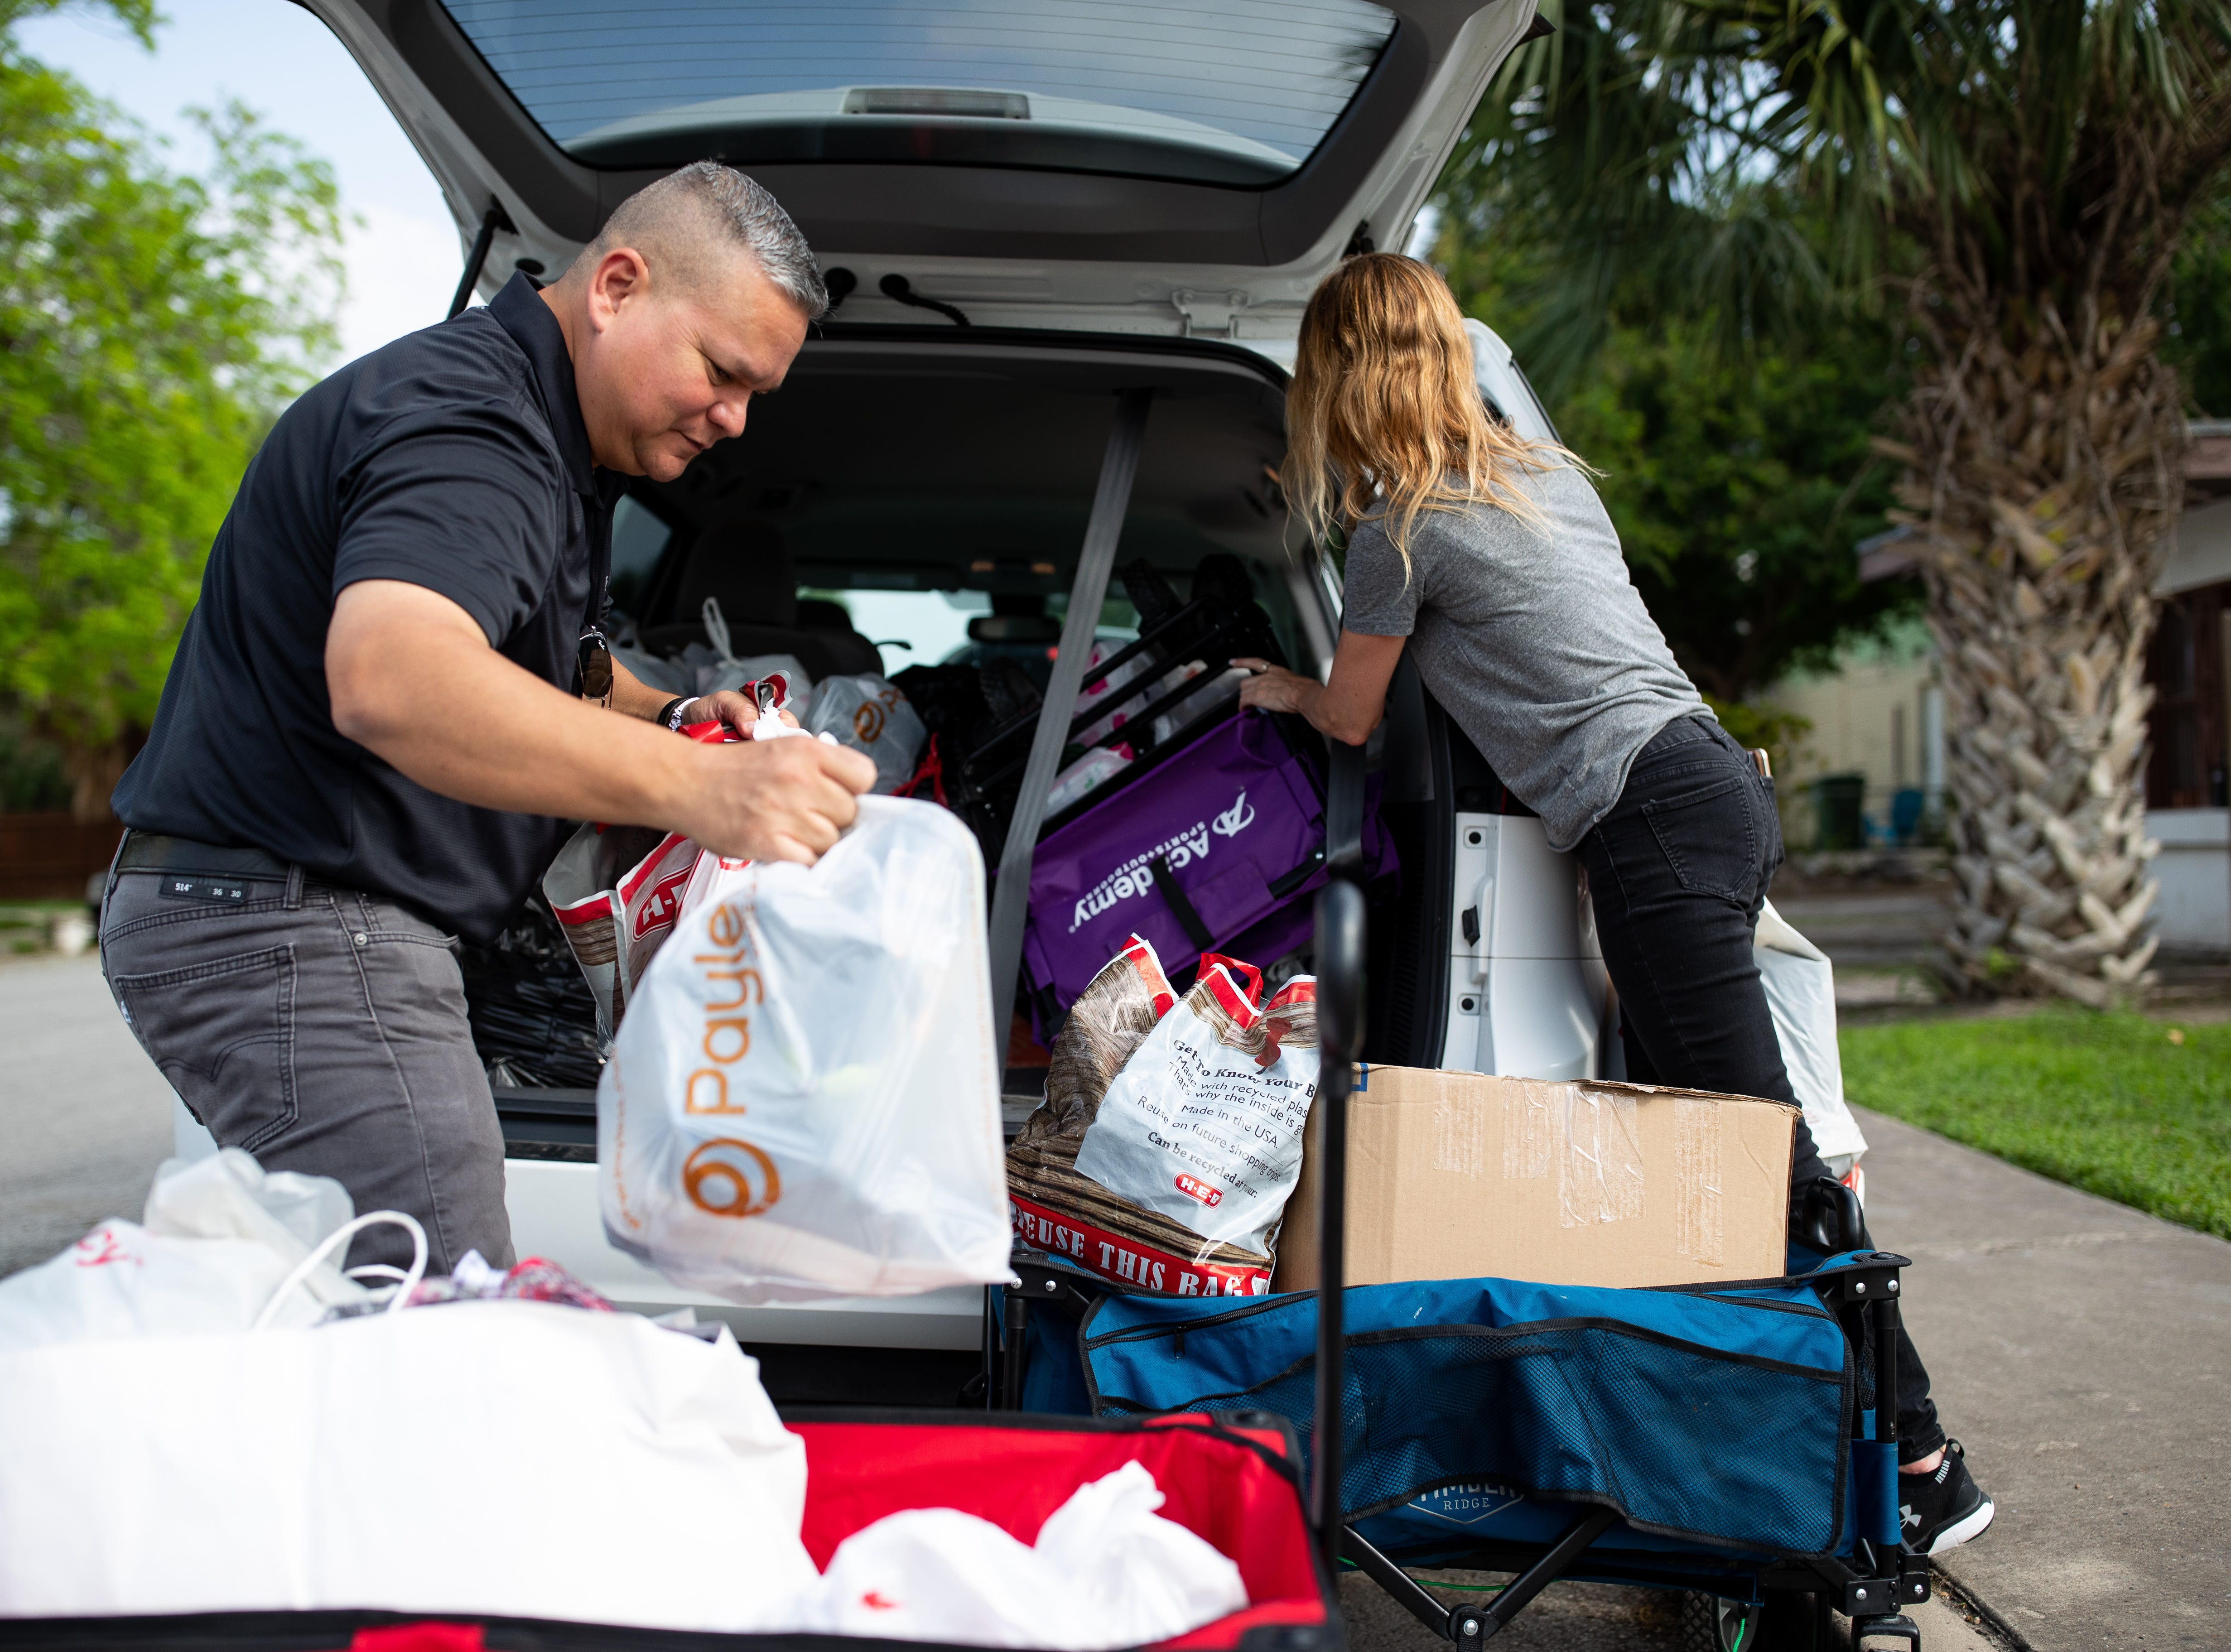 Mike Benavides, of Team Brownsville, helps Diane Beckman of Austin, unload a car full of supplies to help migrants she and two others drove down to Brownsville from Austin in on Thursday, April 4, 2019. Benavides and other volunteers bring two meals a day from Brownsville, Texas to Matamoros, Mexico to help the migrants waiting to seek asylum in the US.